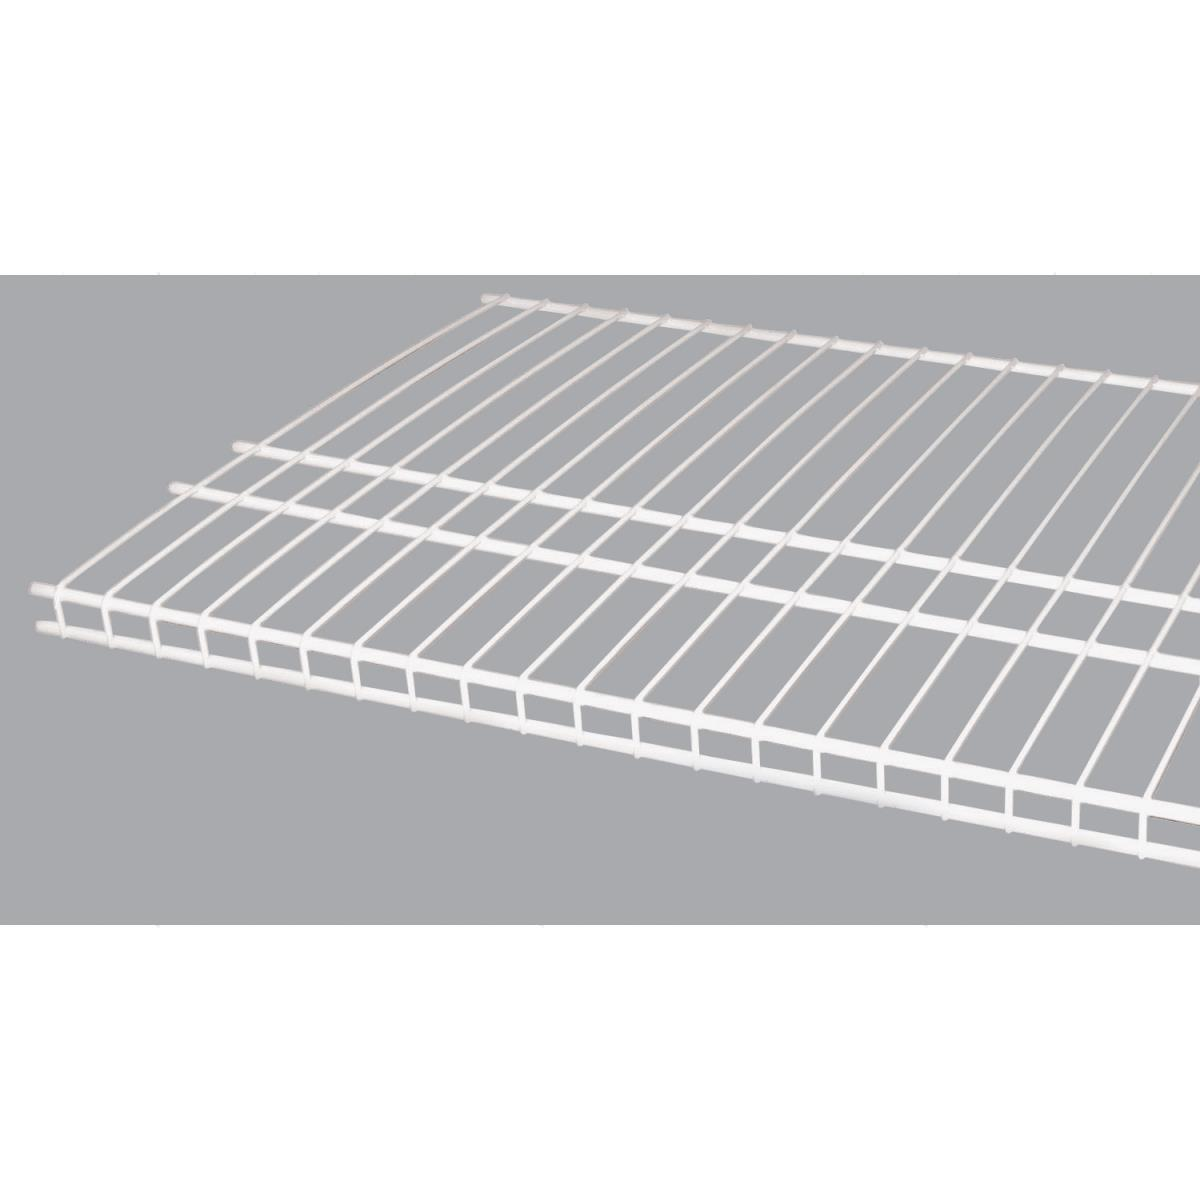 Closetmaid Superslide 12 Ft W X 16 In D Ventilated